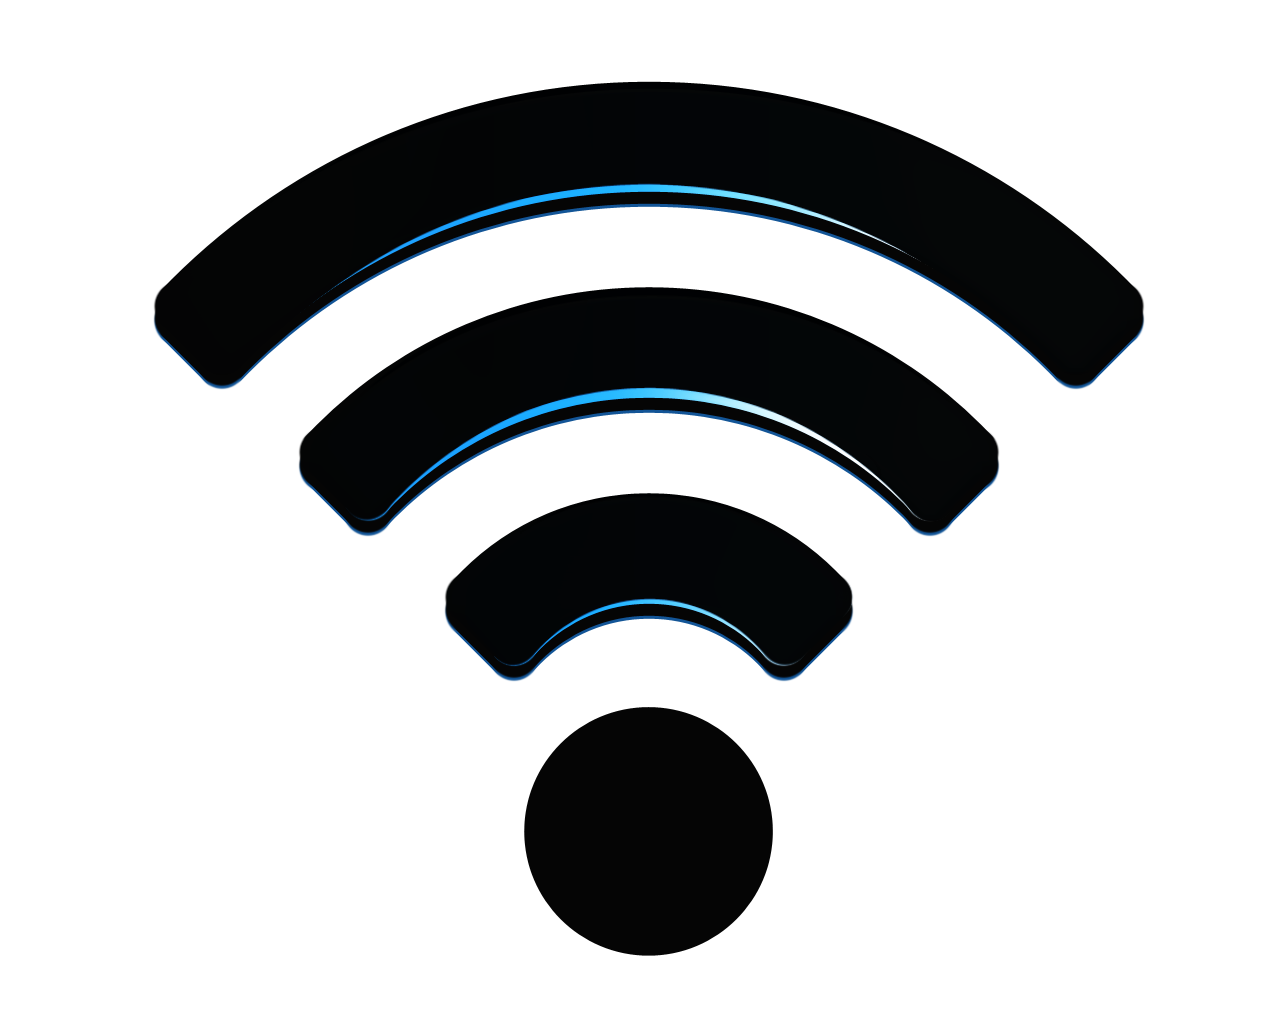 Wifi icon png.